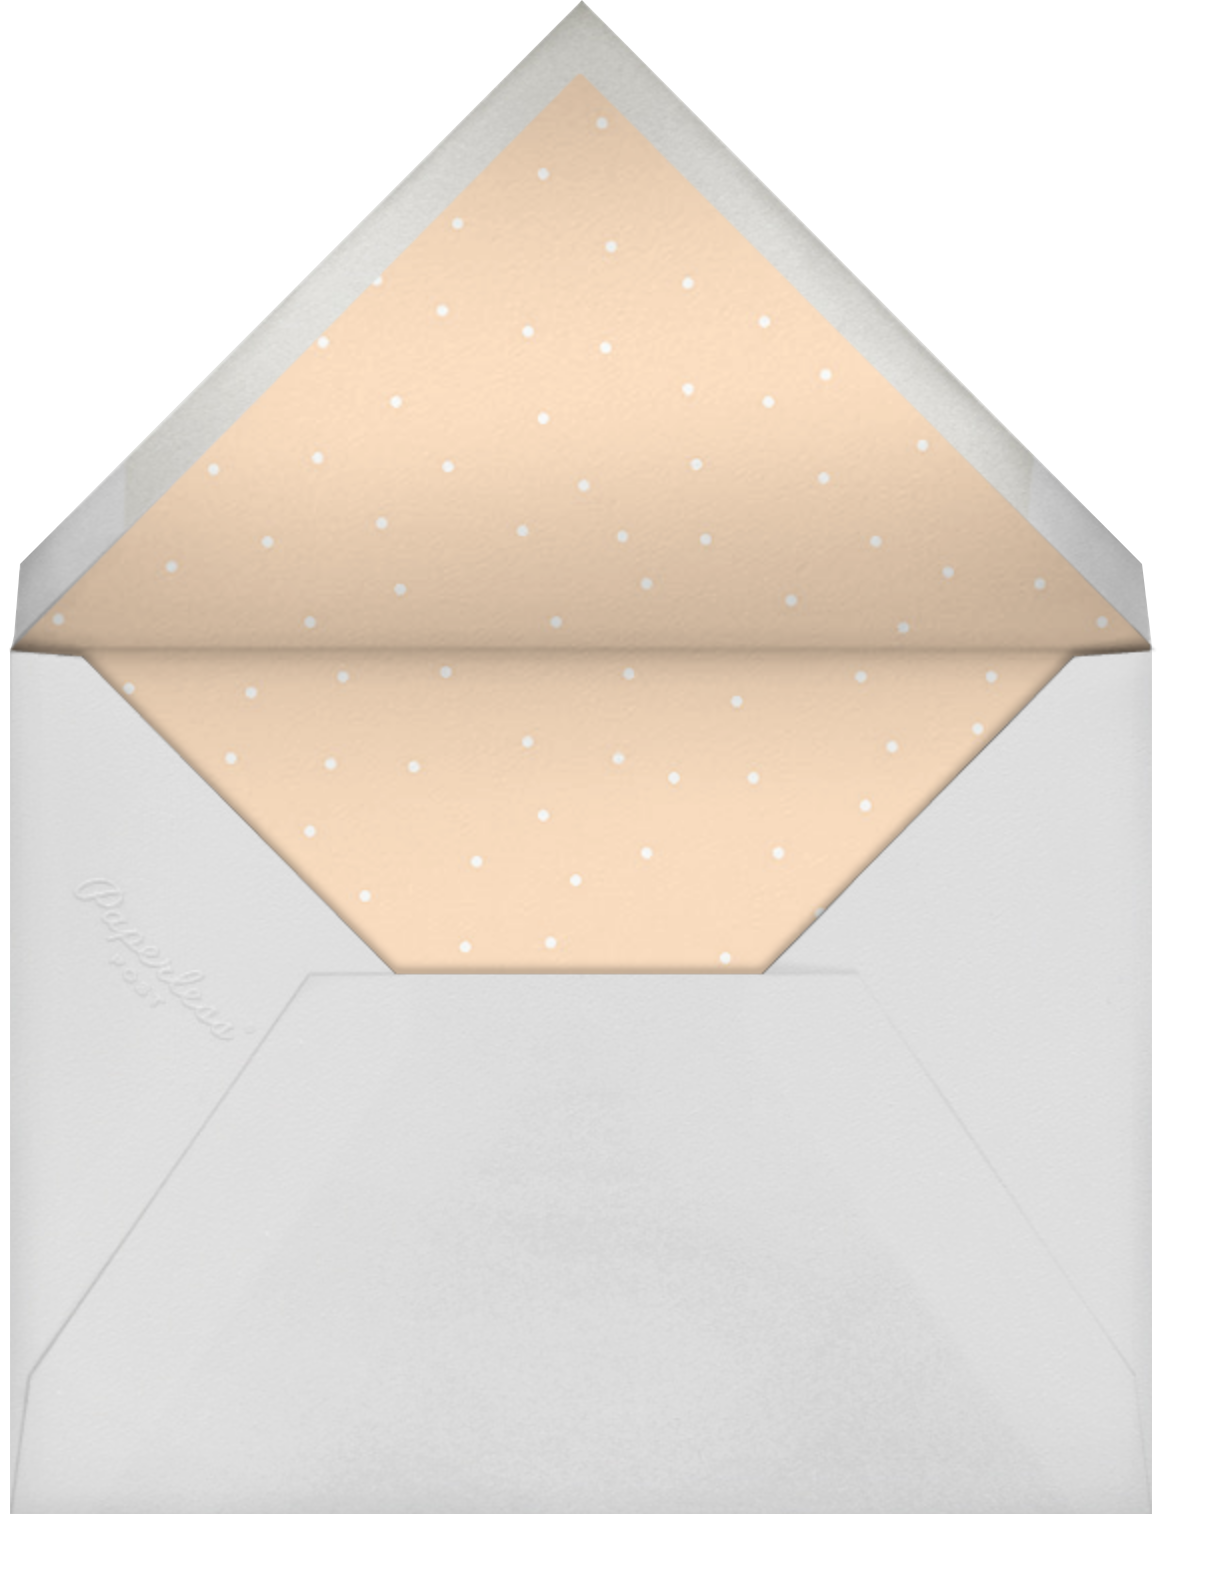 Full-Page Photo (Double-Sided) - Pitch - Paperless Post - Envelope